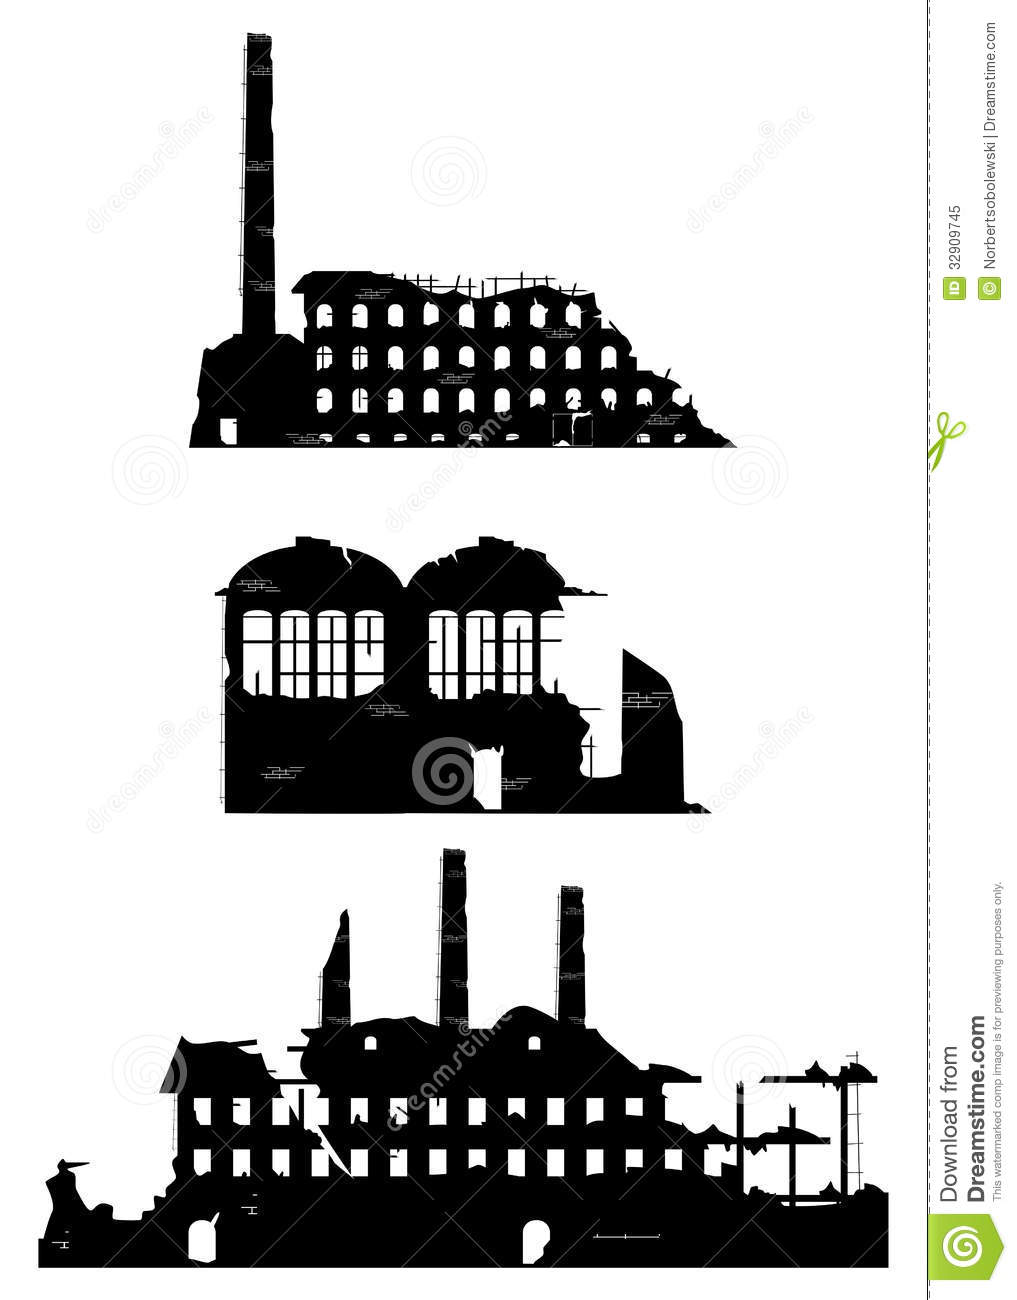 Halloween Stock Vector Auto Electrical Wiring Diagram Club K Home Page 1982 Kp61 Dash Industrial Ruins On A White Background